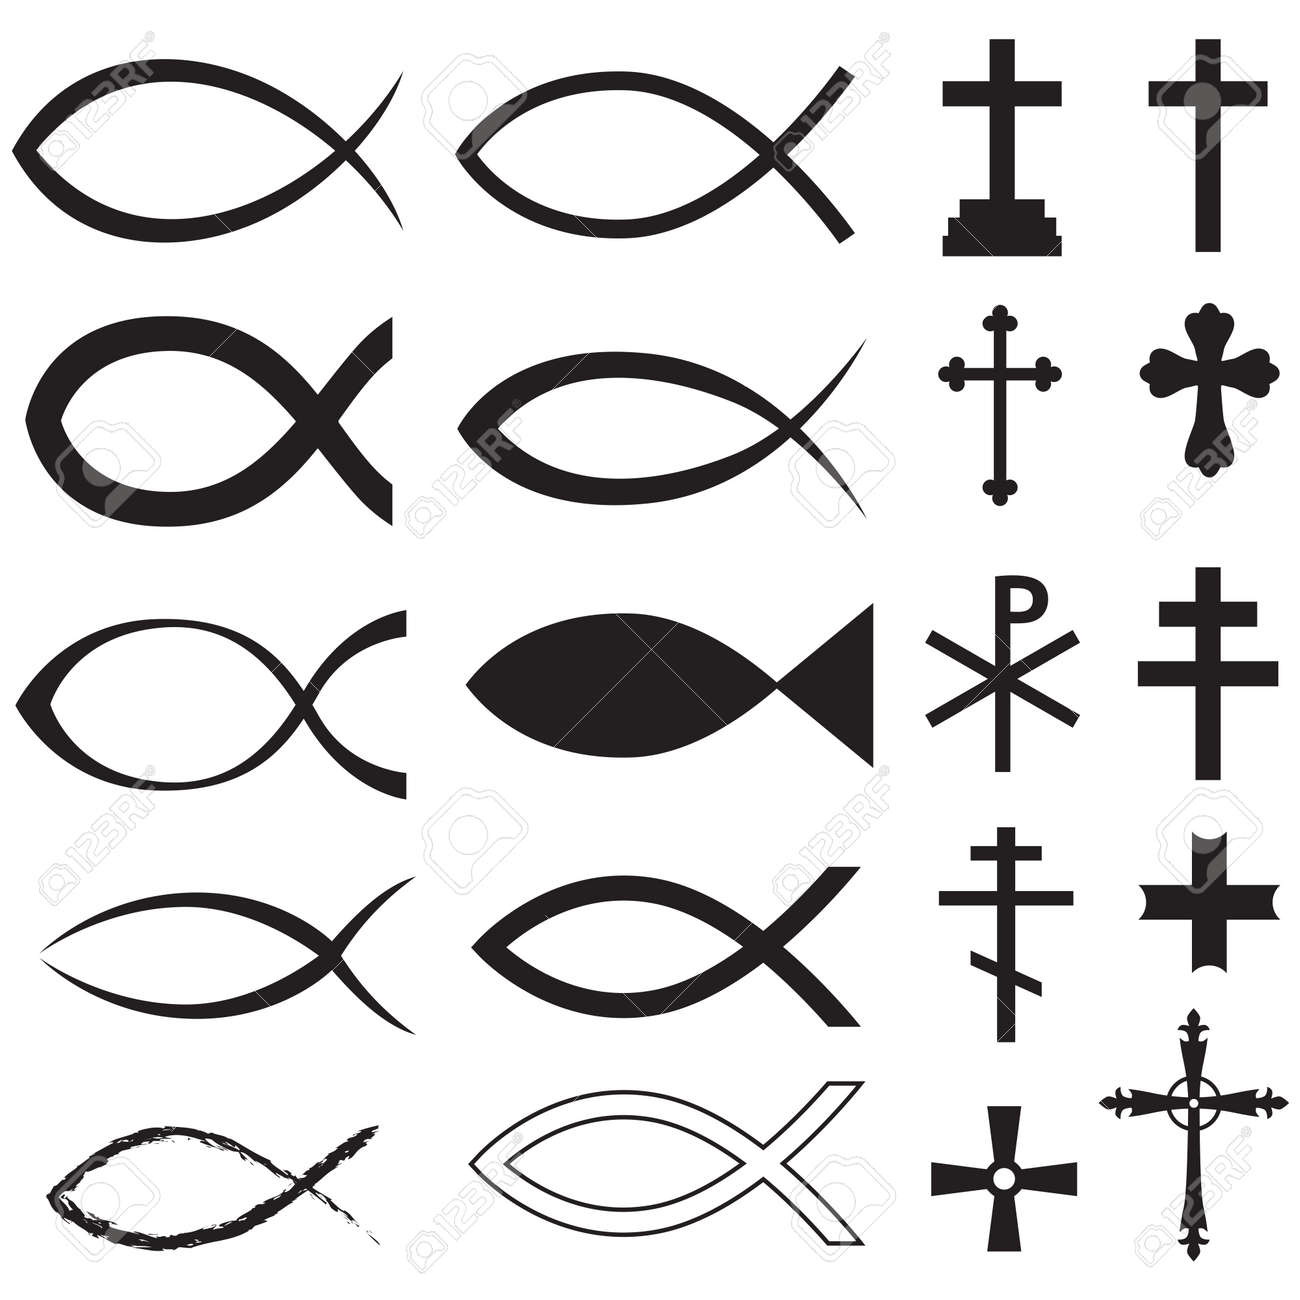 Set christian fish symbol and different crosses royalty free set christian fish symbol and different crosses stock vector 26546147 buycottarizona Gallery